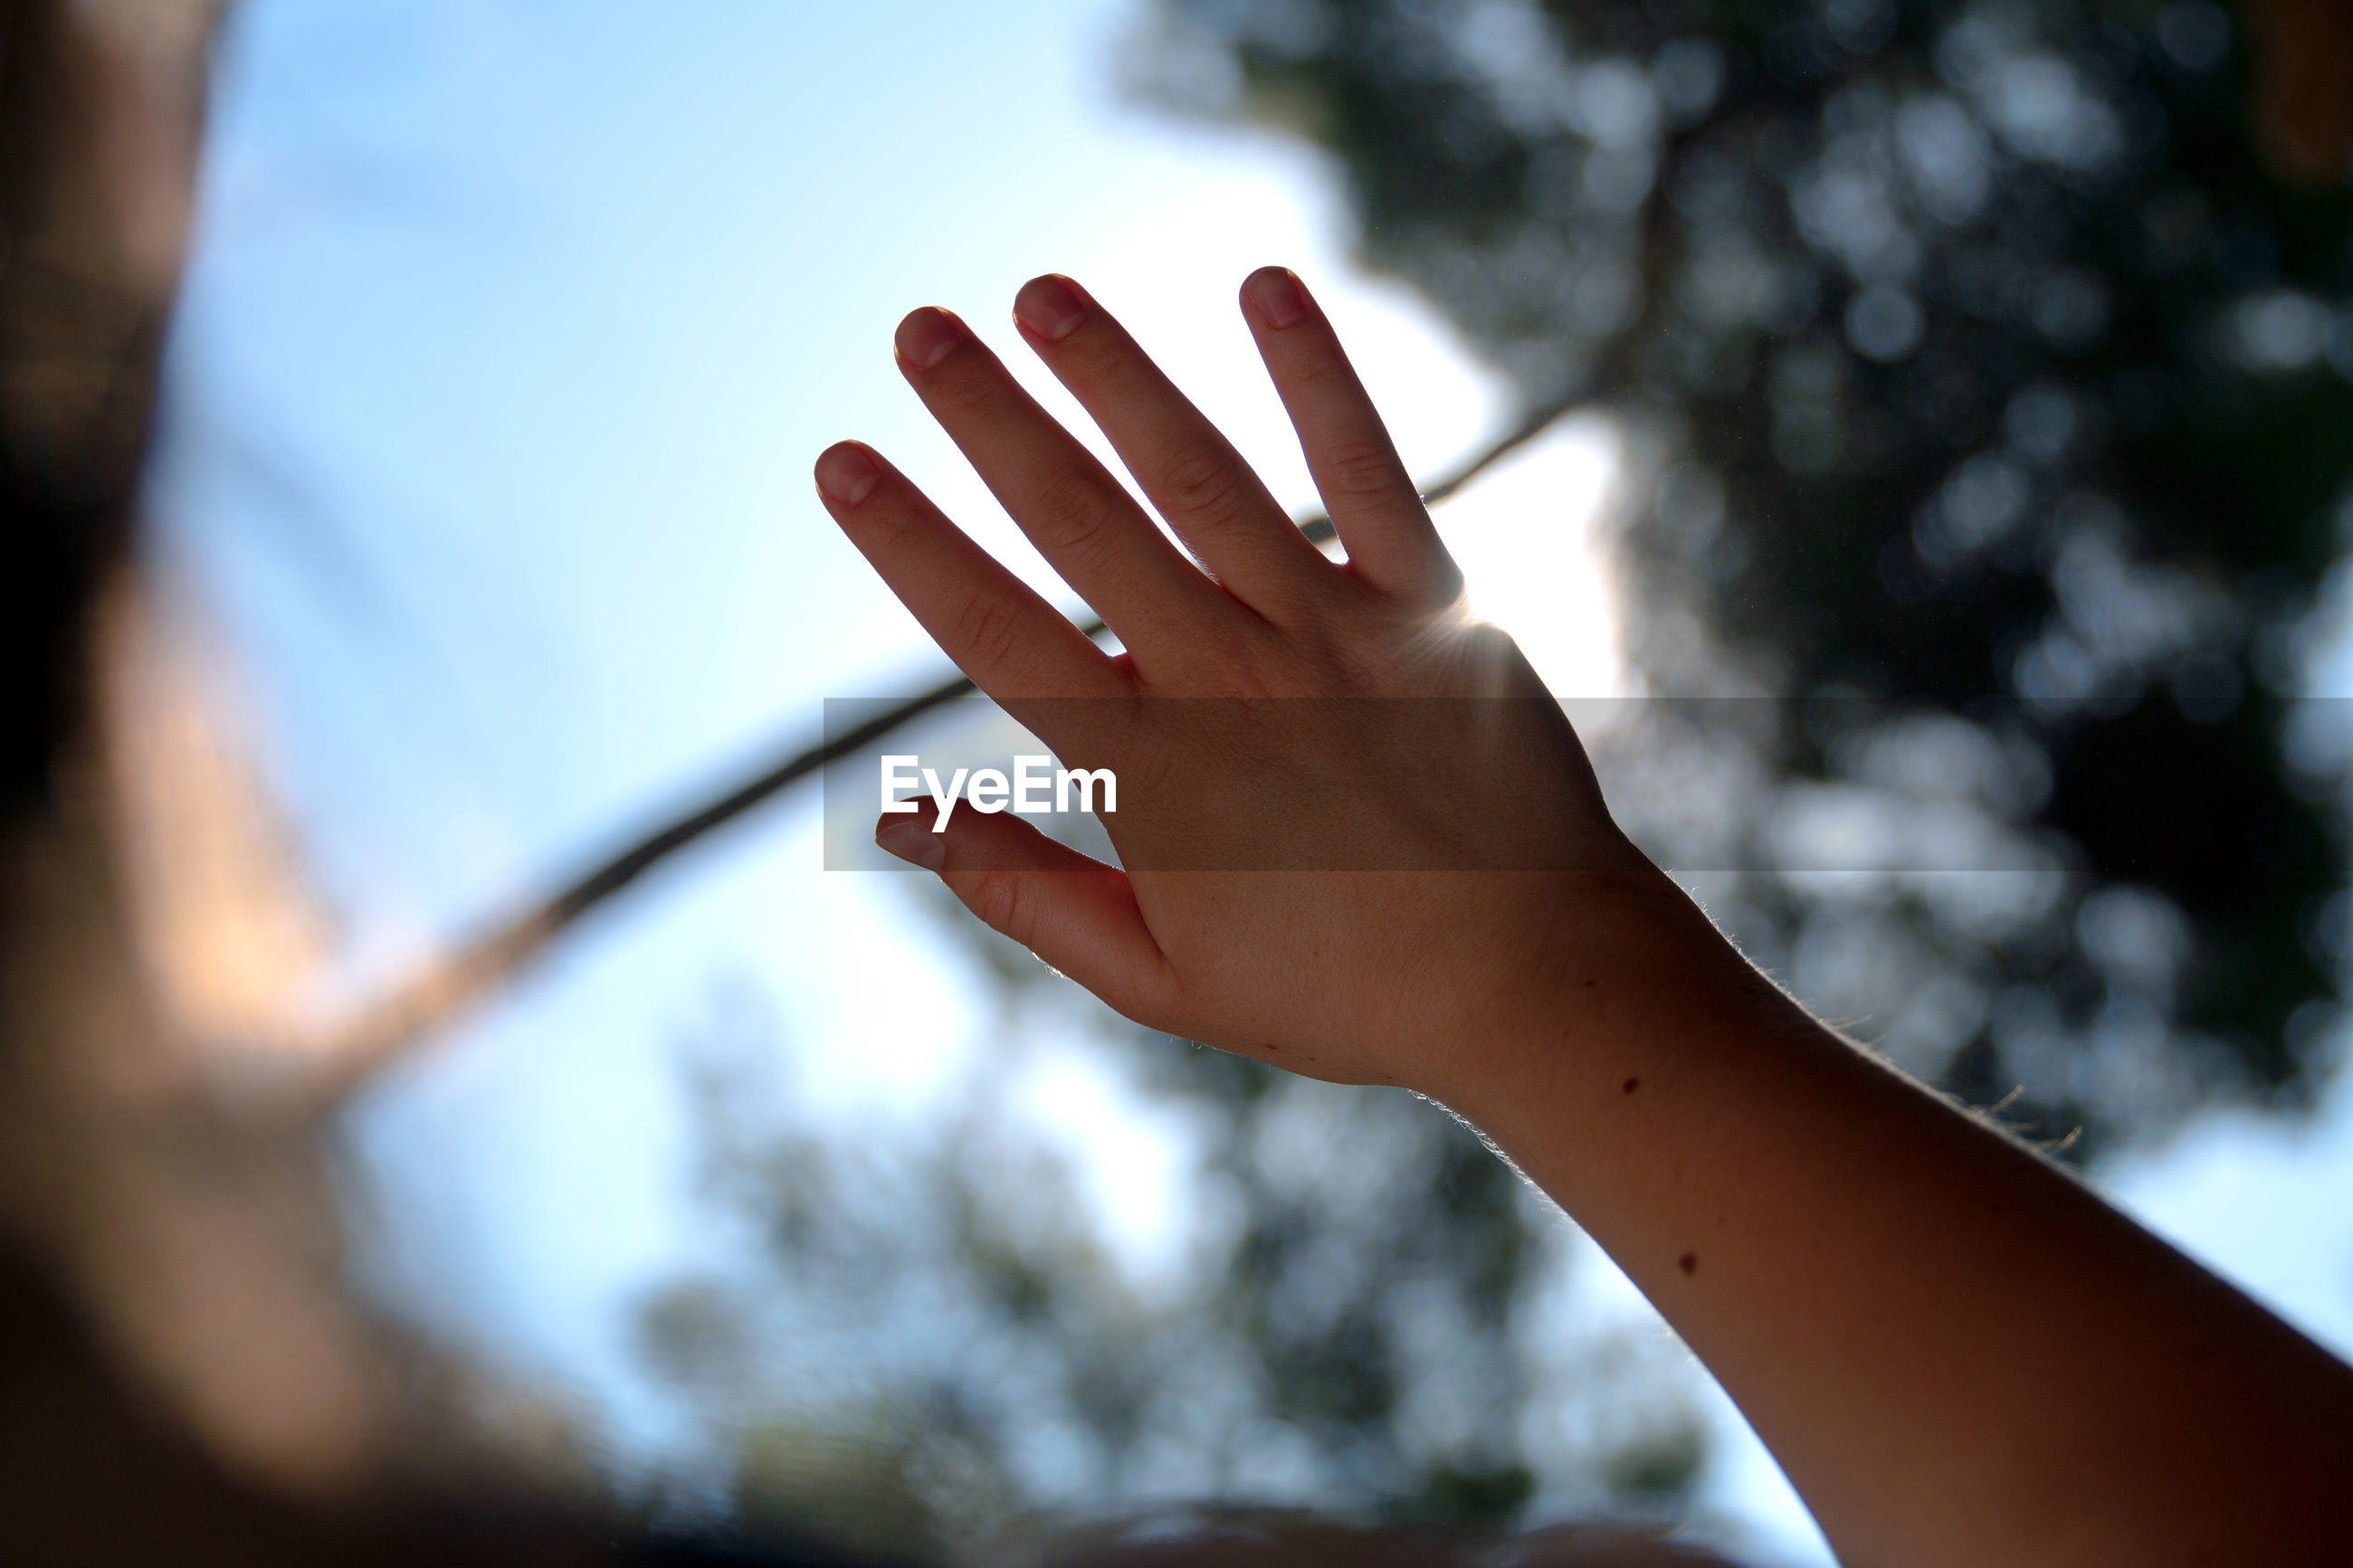 Low angle view of human hand against sky